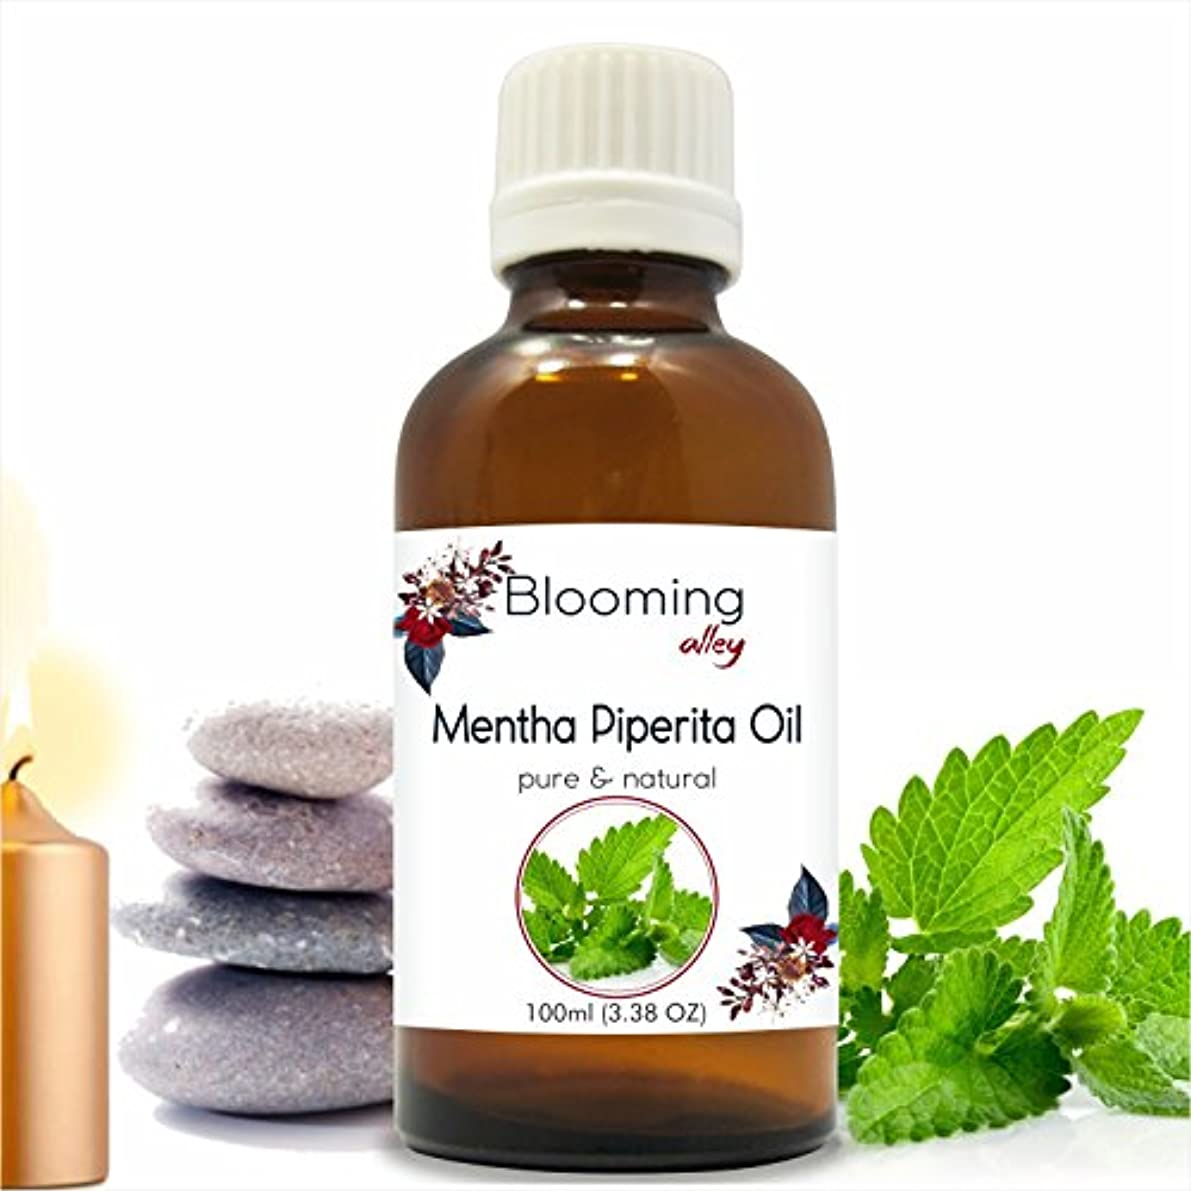 スラック作り上げる名詞Menthapipreta Oil(Mentha Piperita) Essential Oil 100 ml or 3.38 Fl Oz by Blooming Alley